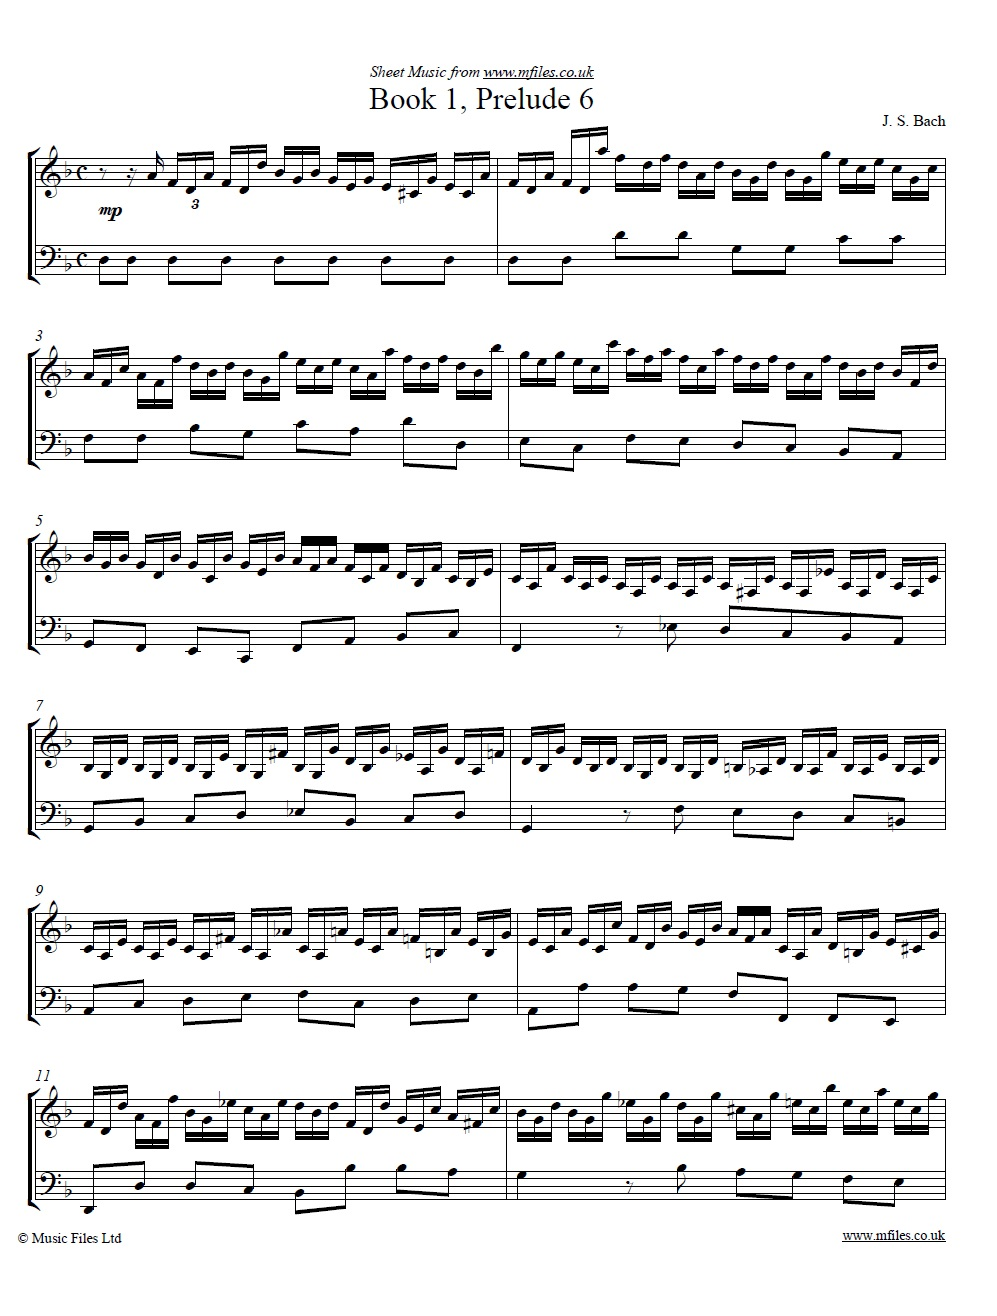 Bach's Prelude No.6 from book 1 of the WTC - sheet music 1st page